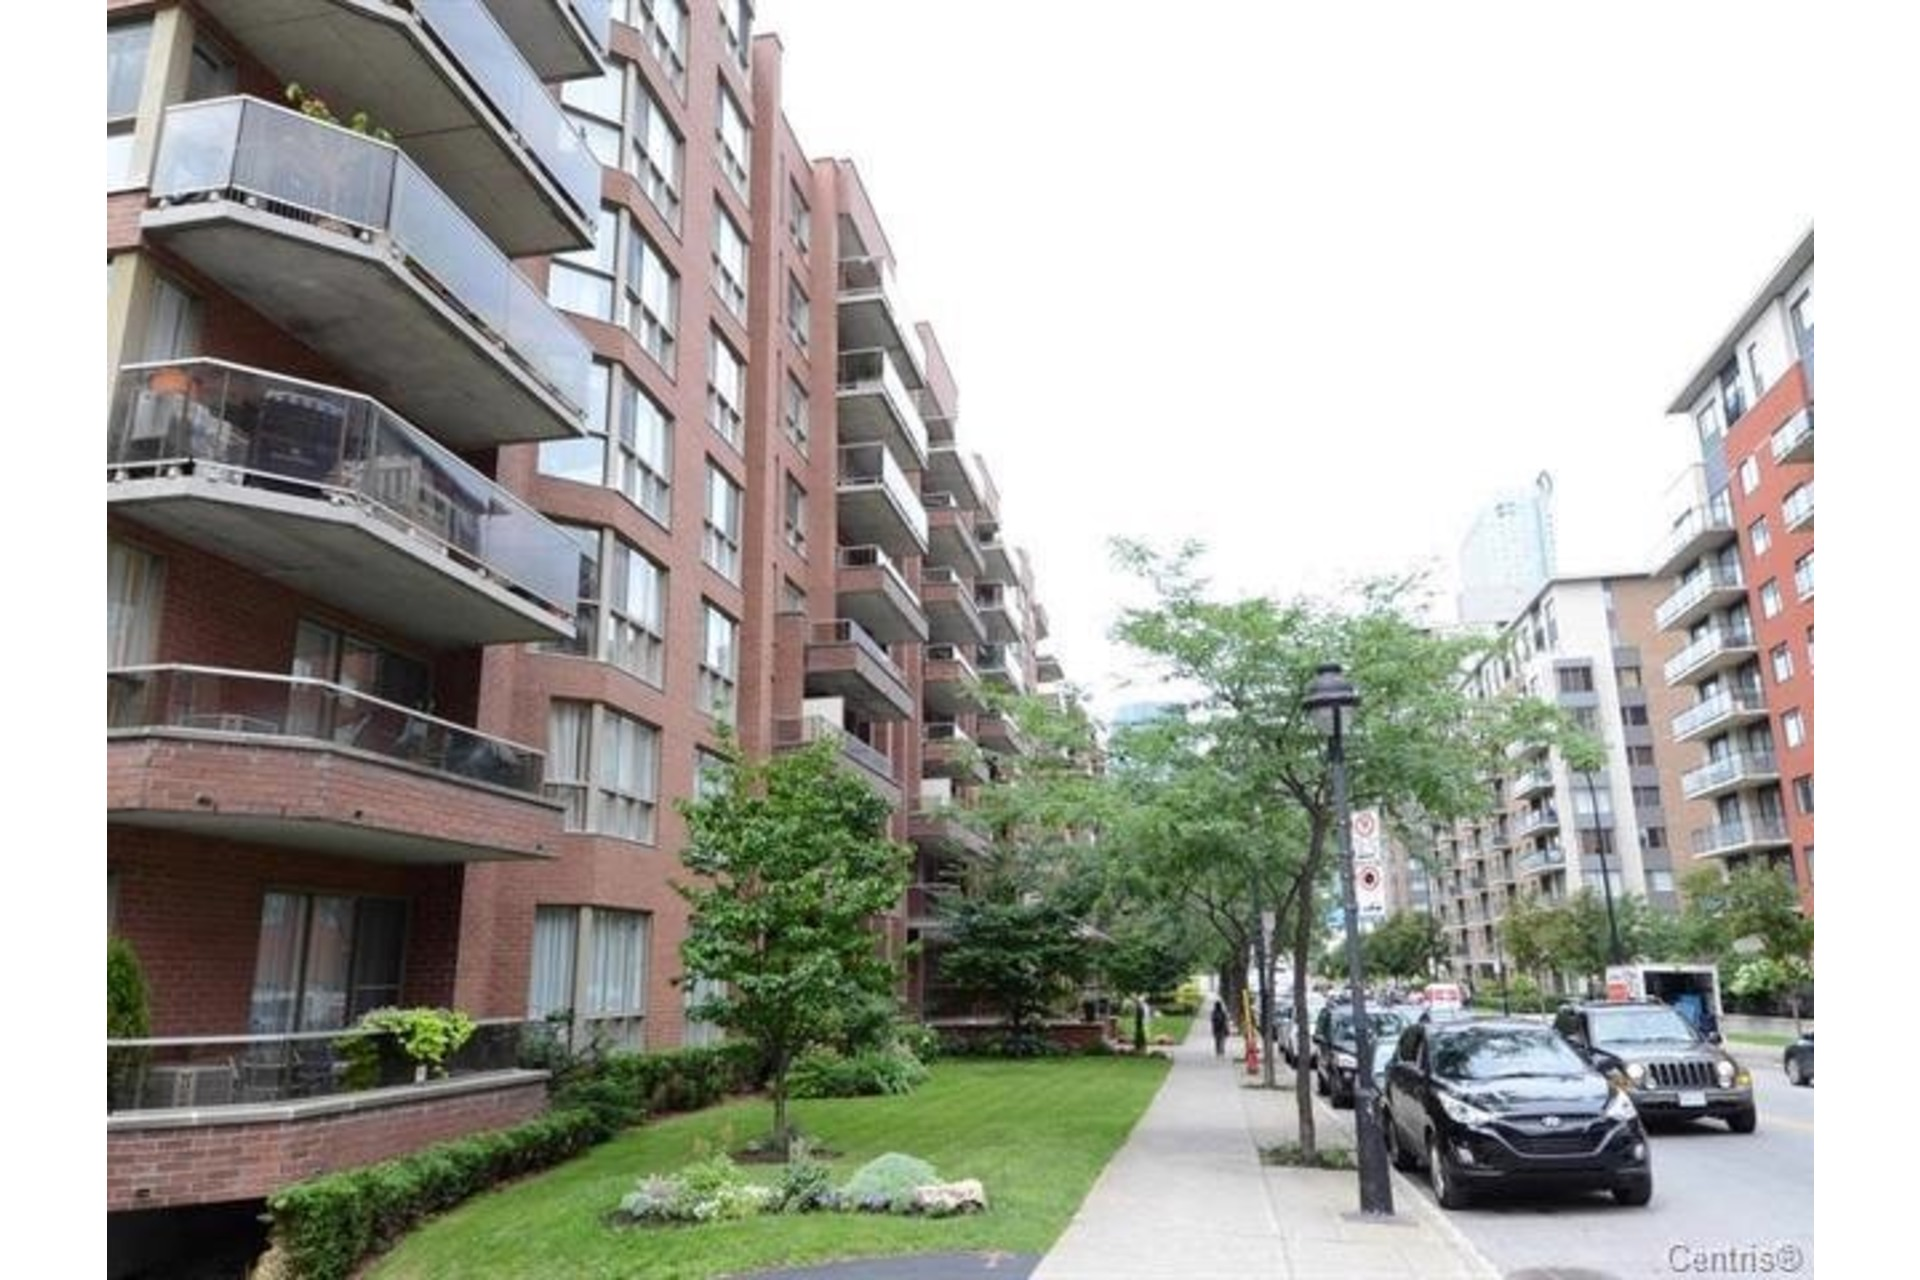 image 18 - Apartment For sale Ville-Marie Montréal  - 4 rooms